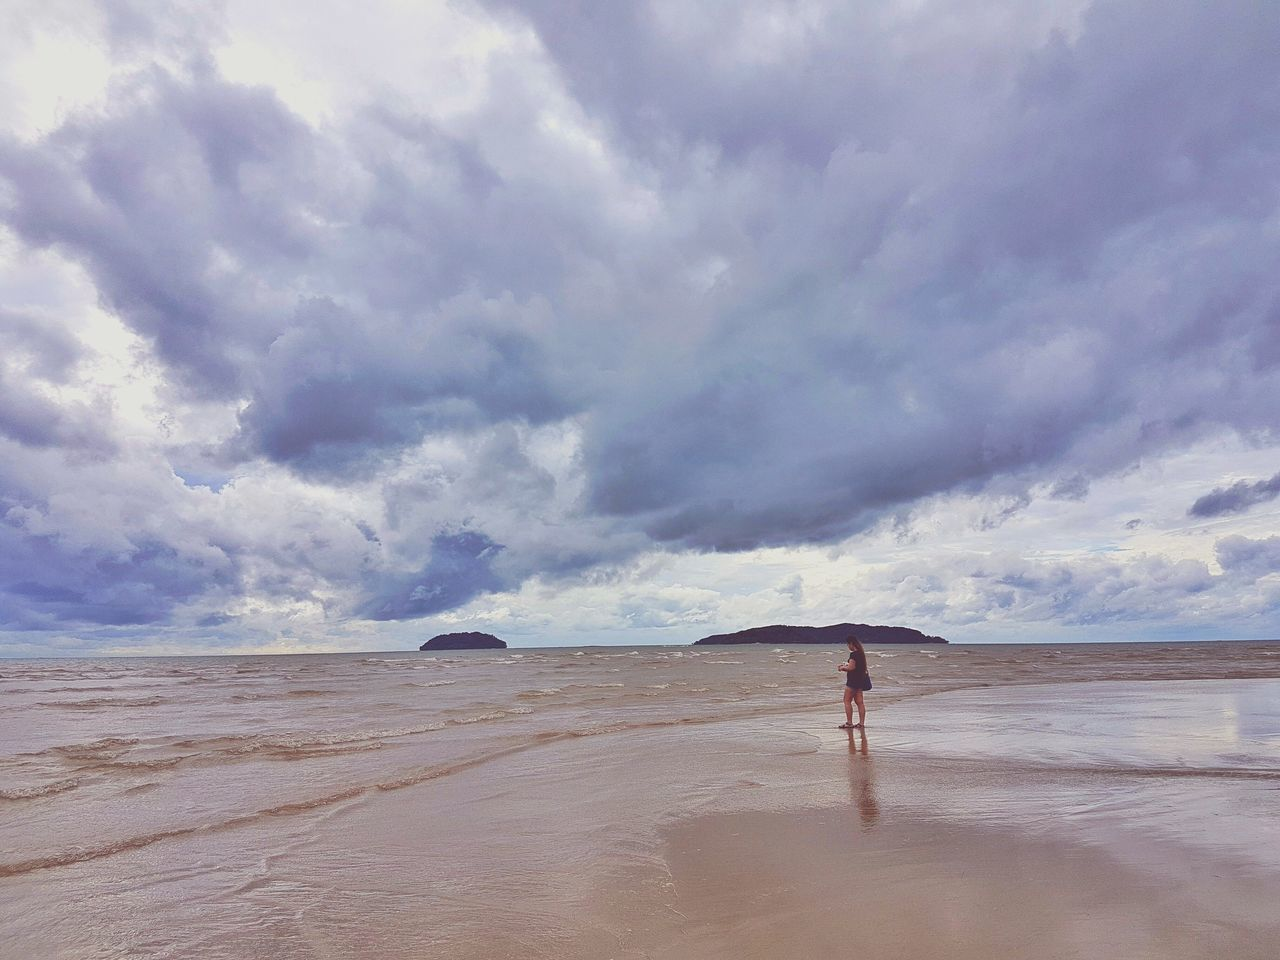 Beach Cloud - Sky Sand One Person Scenics Sky One Man Only Outdoors Full Length Nature Adult Adults Only Water Only Men Landscape Travel Destinations Day Desert Beauty In Nature Sea Eyeem Philippines EyeEmNewHere Traveling Photography TCPM